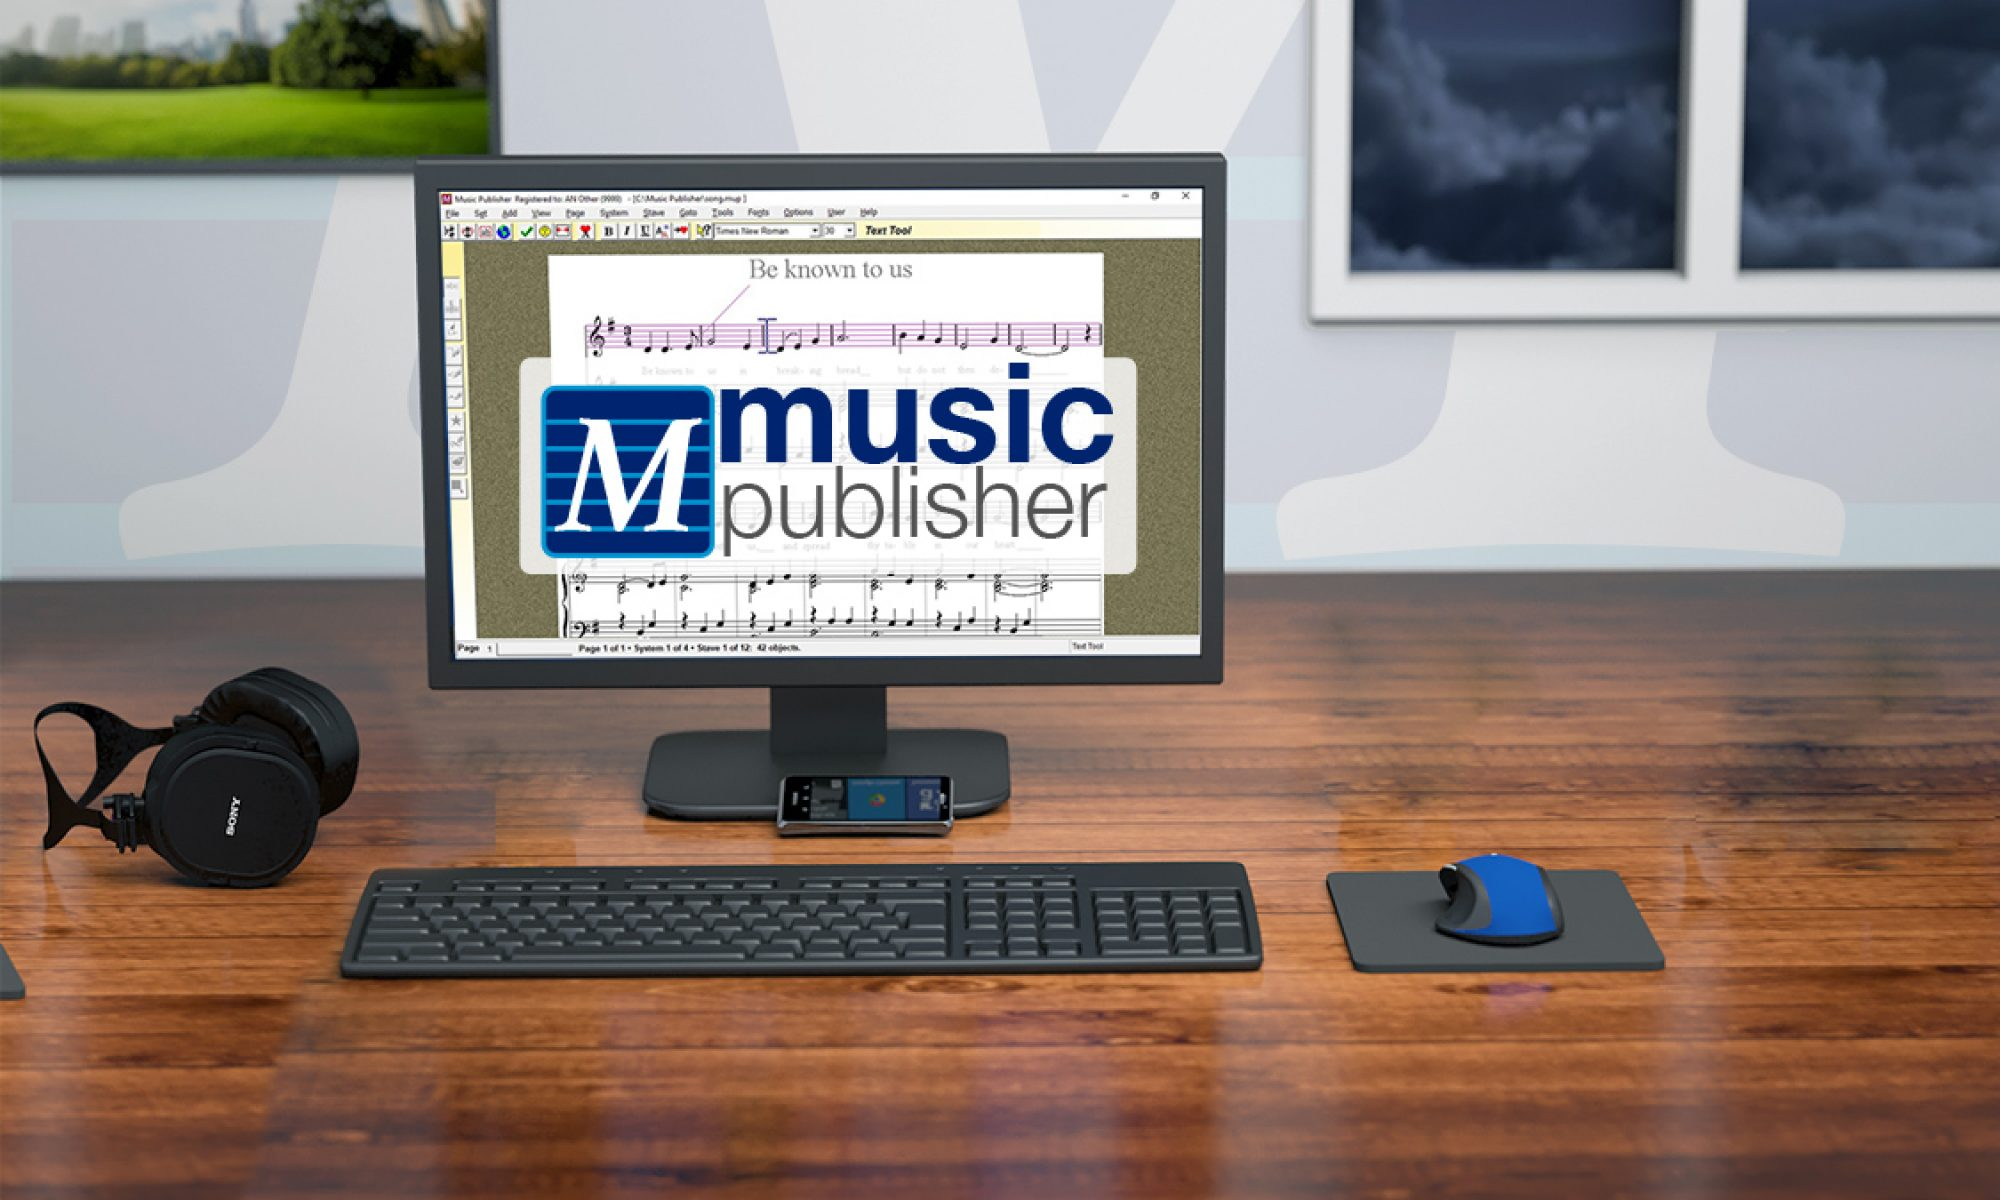 Music Publisher